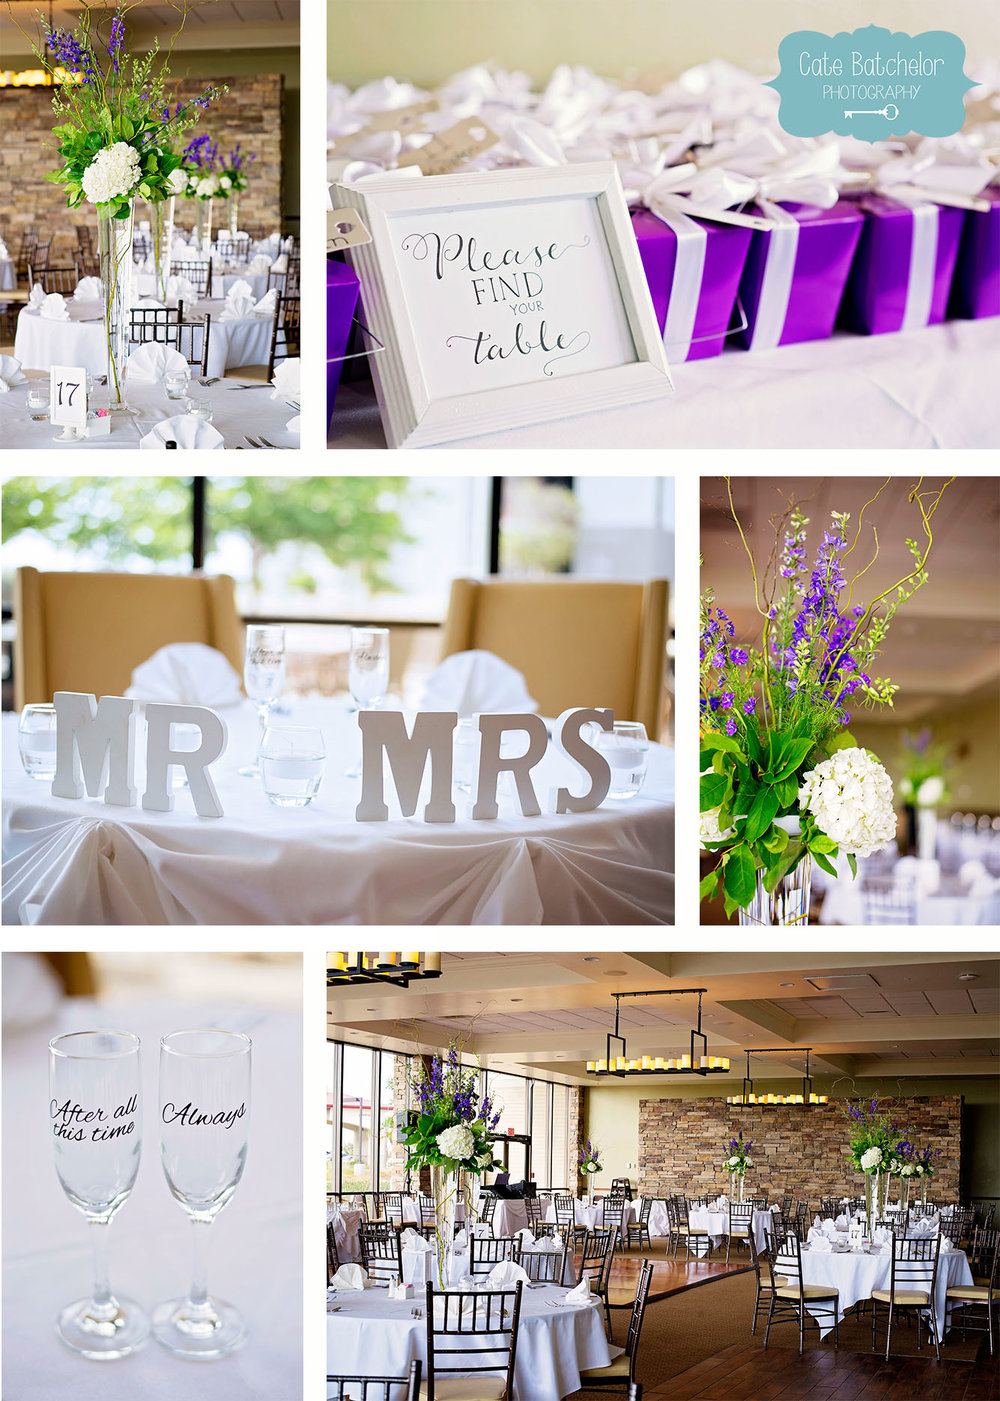 Beautiful reception details!